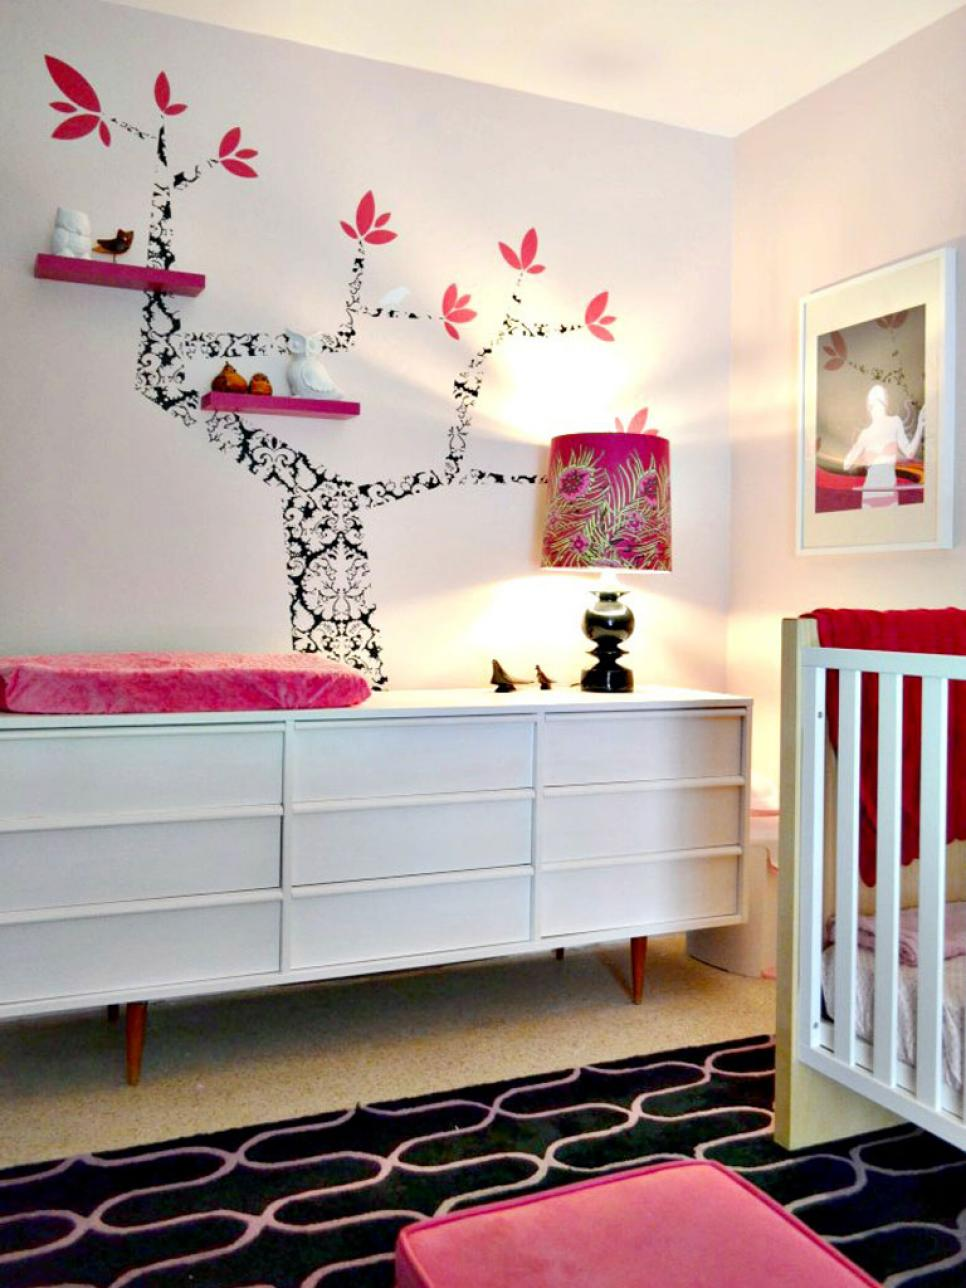 Affordable Kids' Room Decorating Ideas